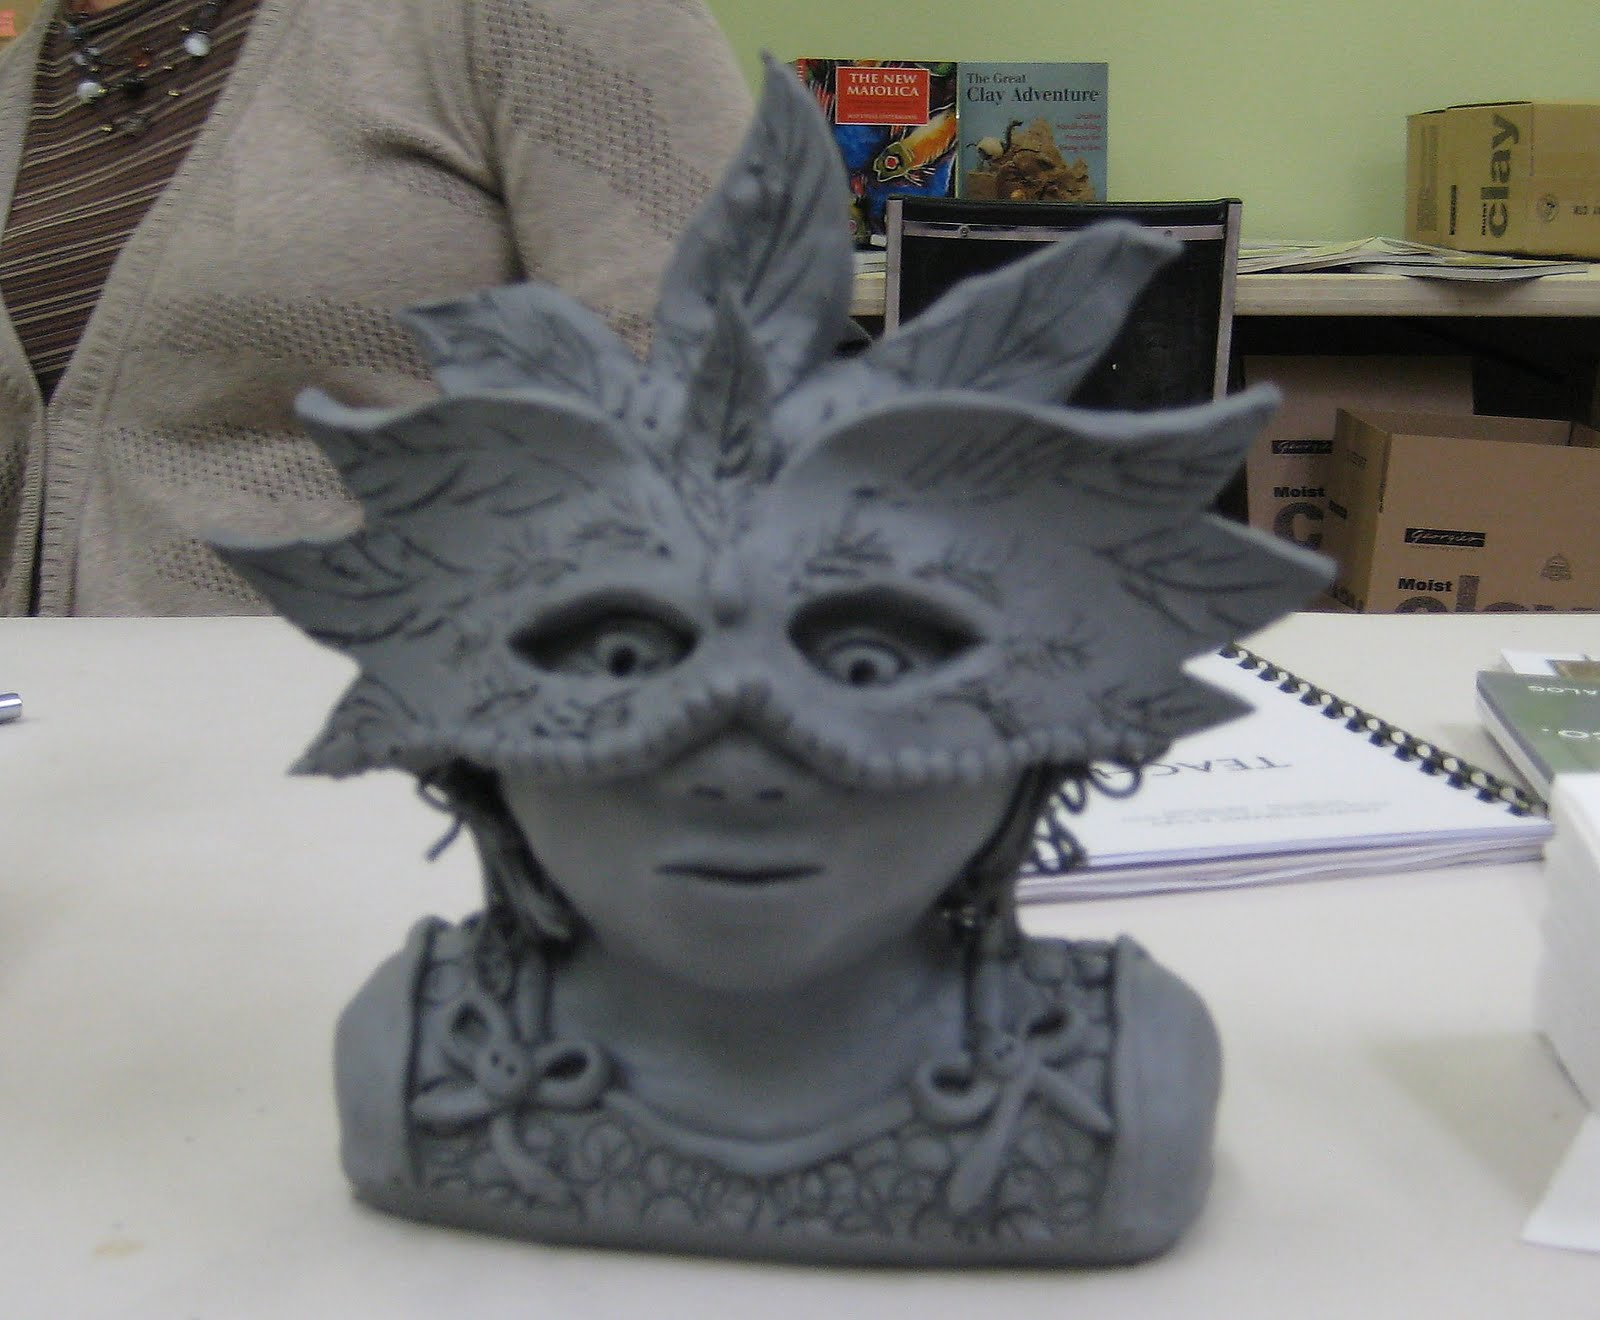 clay mask designs. best homemade mask designs ideas and images on